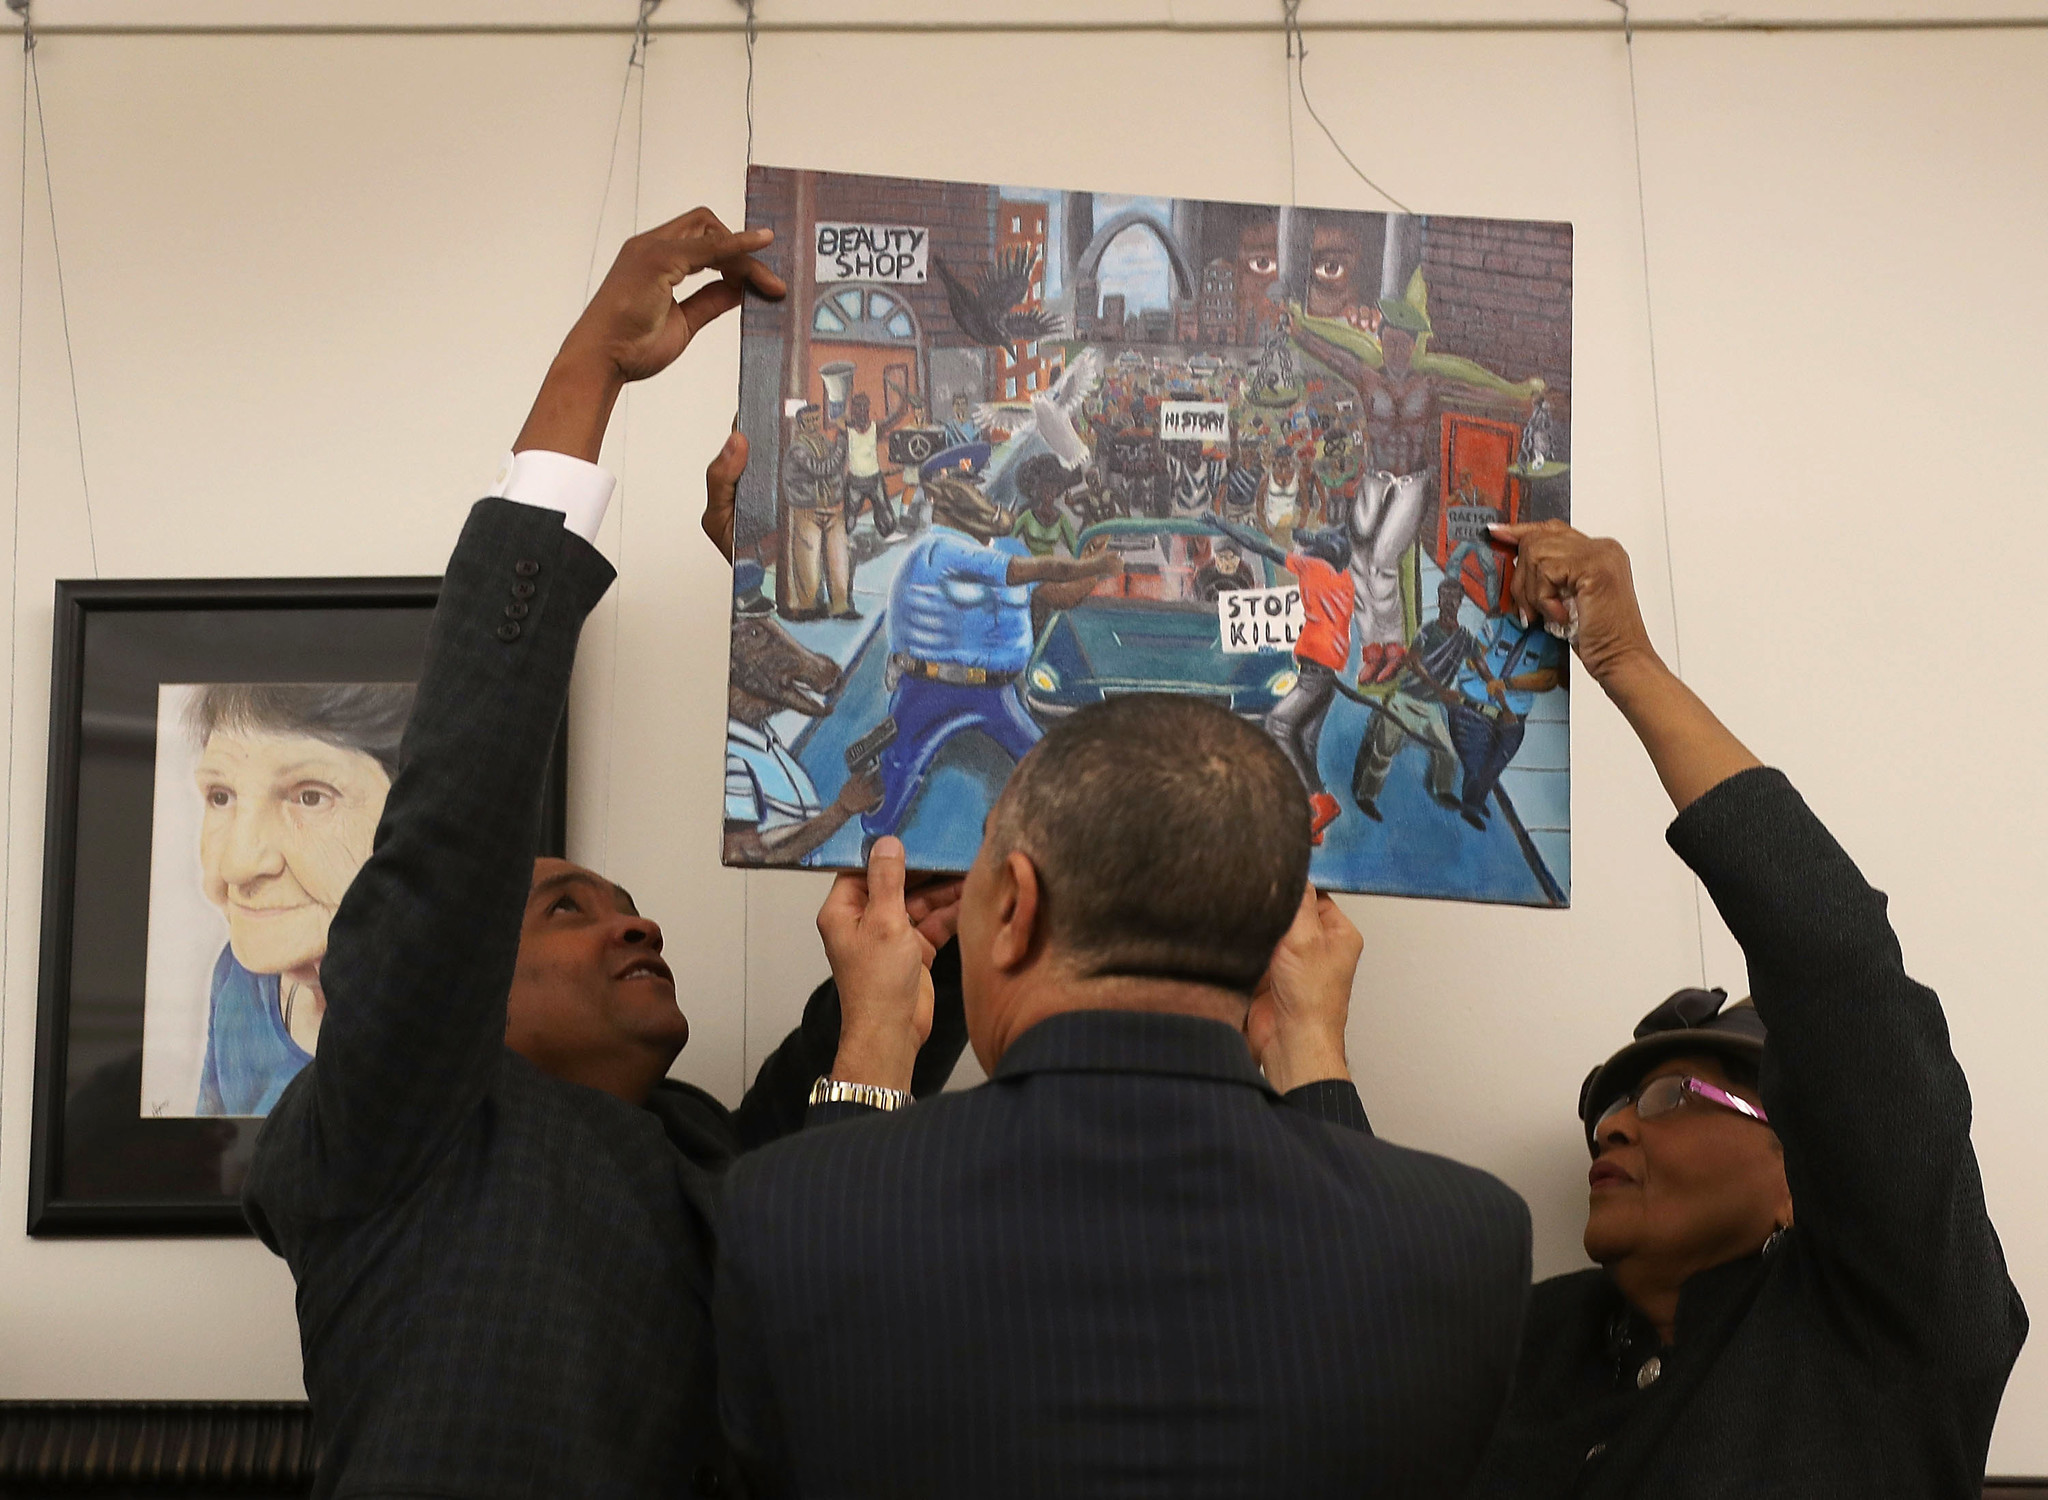 D.C. painting rehung and removed again — this time not by Rep.Hunter